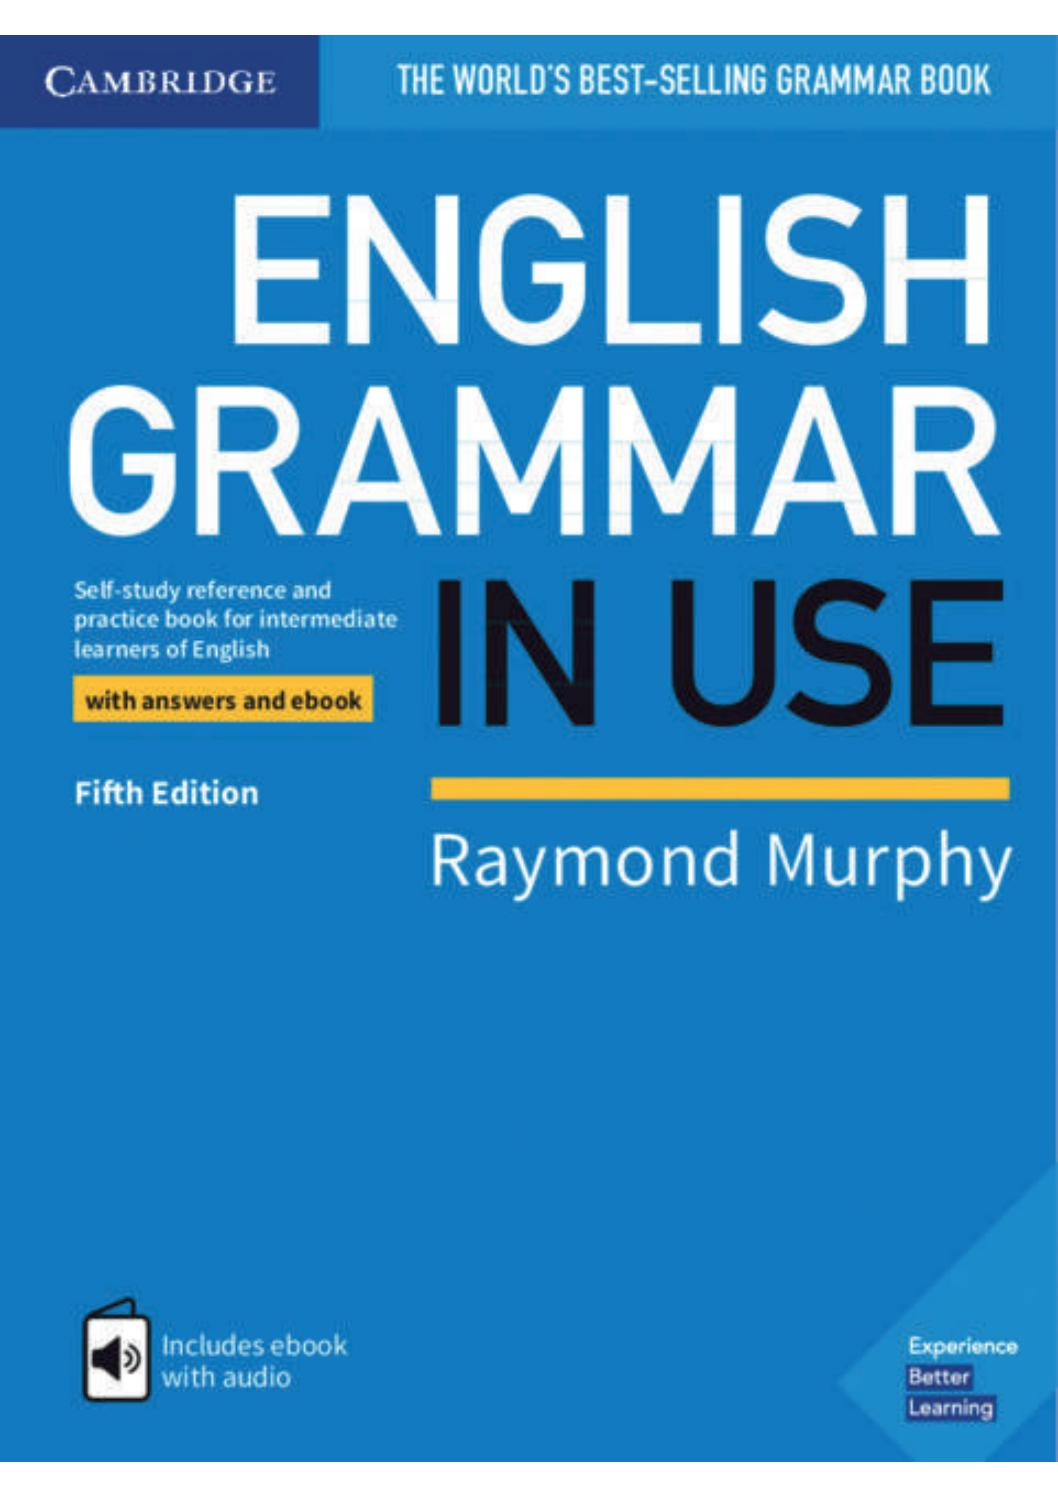 English Grammar In Use With Answers : english, grammar, answers, English, Grammar, Edition, 華泰文化, Publishing, Issuu